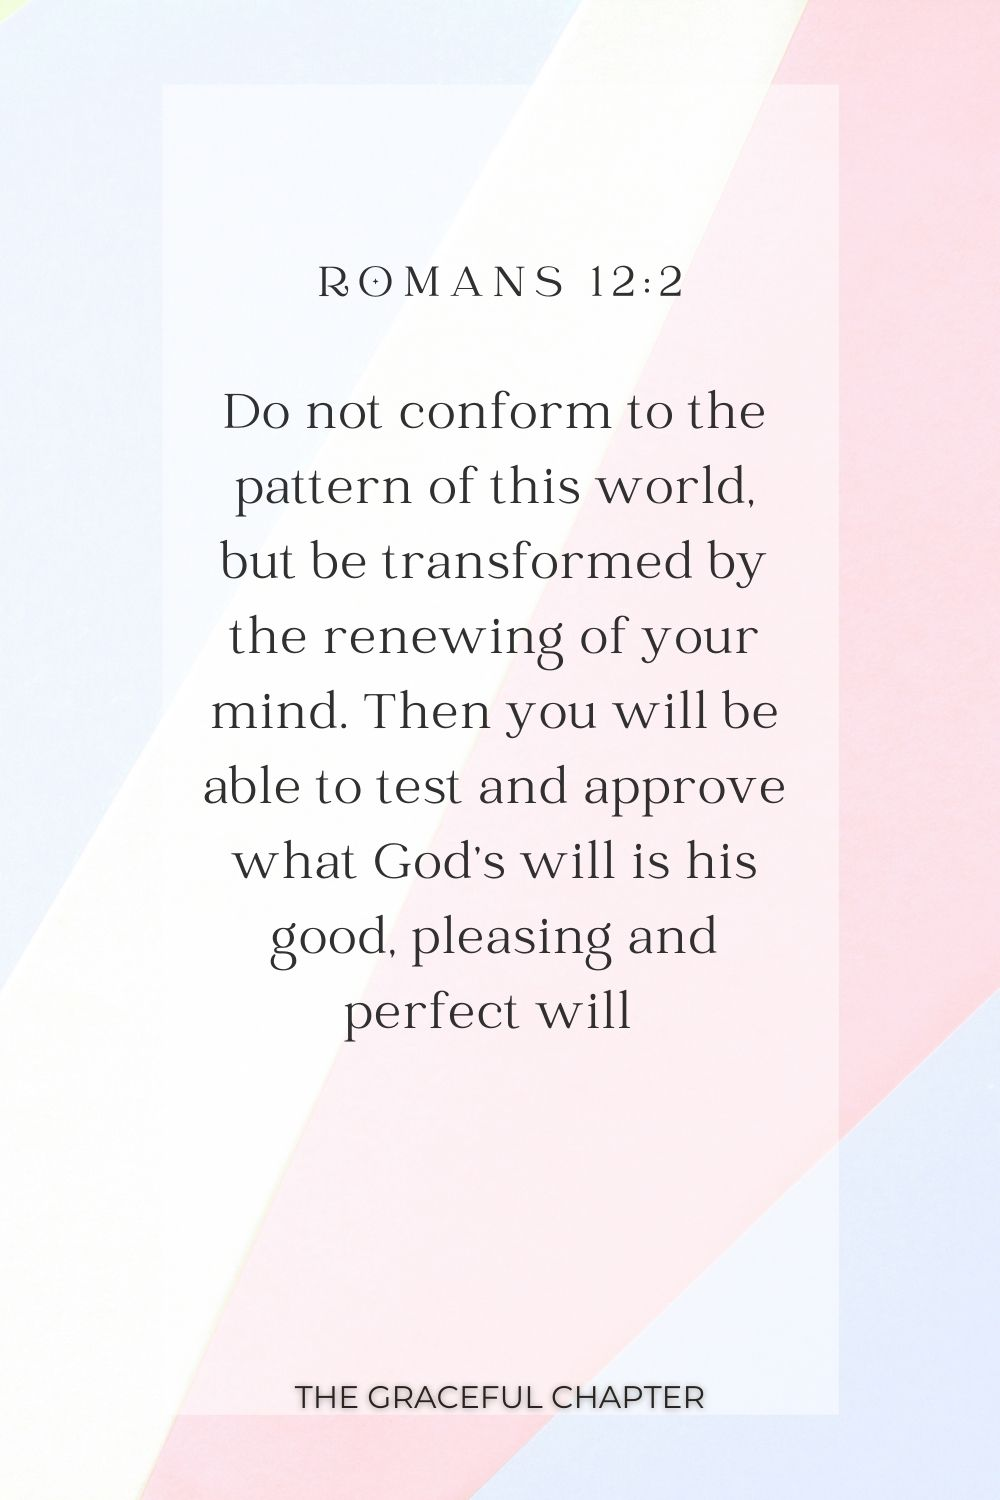 Do not conform to the pattern of this world, but be transformed by the renewing of your mind. Then you will be able to test and approve what God's will is his good, pleasing and perfect will  Romans 12:2